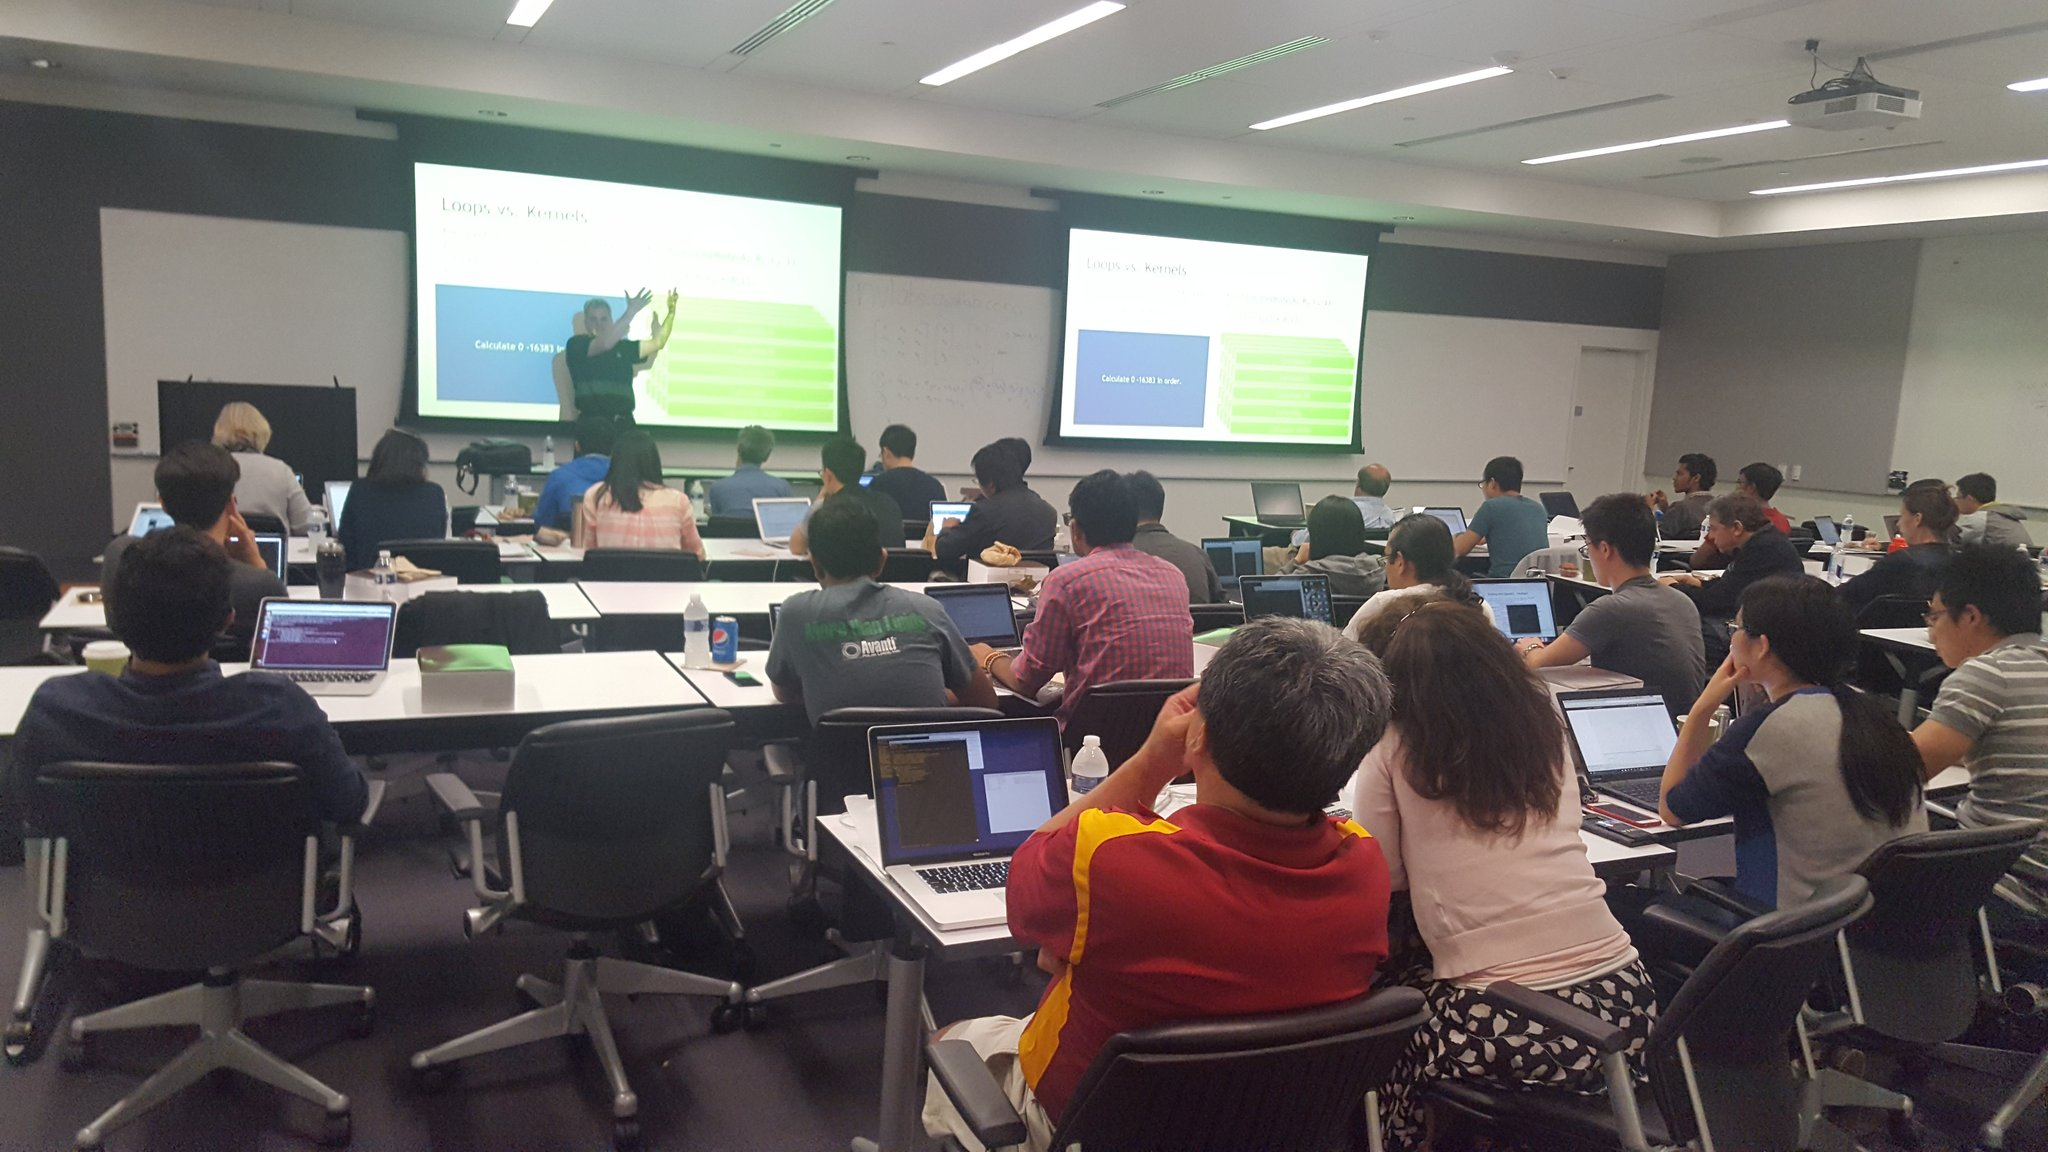 #NVIDIA Bob Crovella leading his Parallel Programming Workshop,  all  #OpenACC,  here at #USC, tomorrow Deep Learning with #GPU https://t.co/VKehxw4v1e